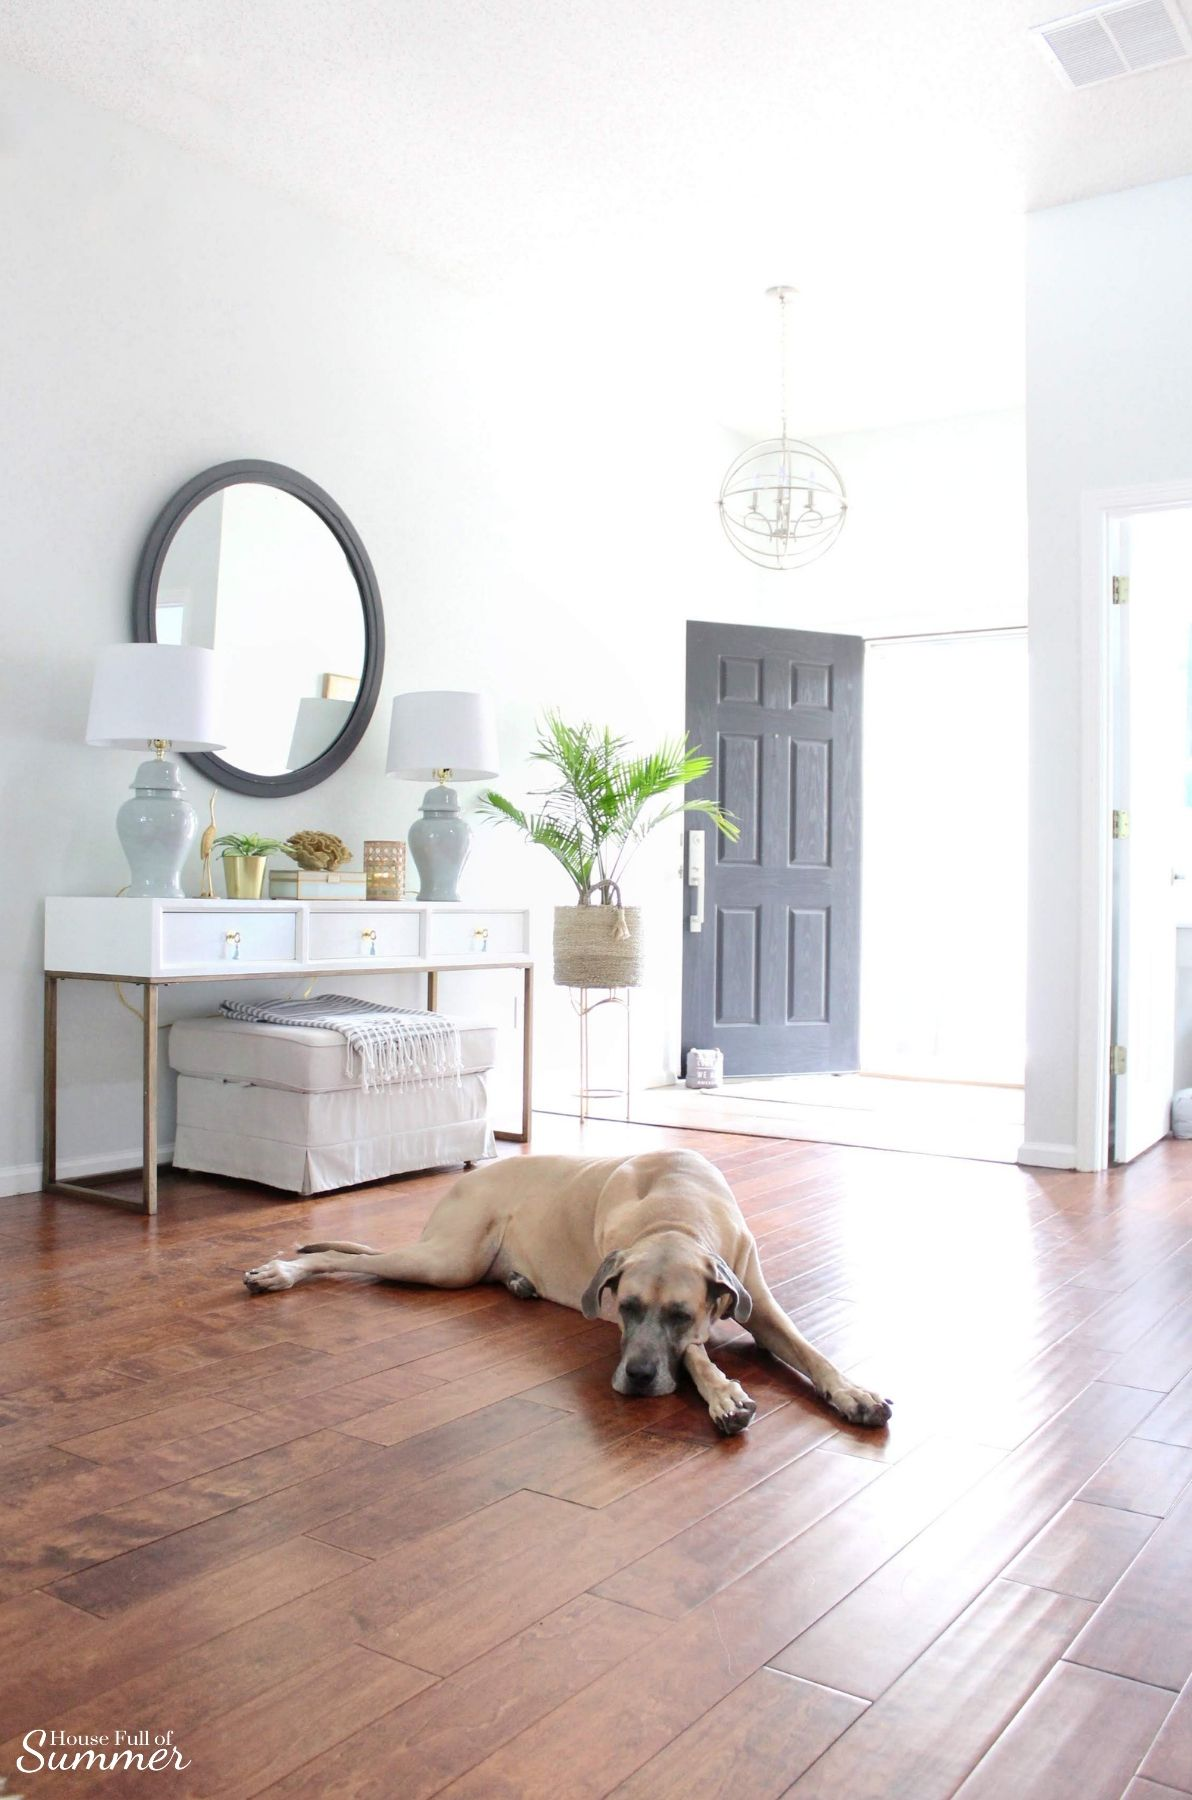 5 Items You D Never Guess I Found On Craigslist With Images Foyer Decorating Coastal Homes